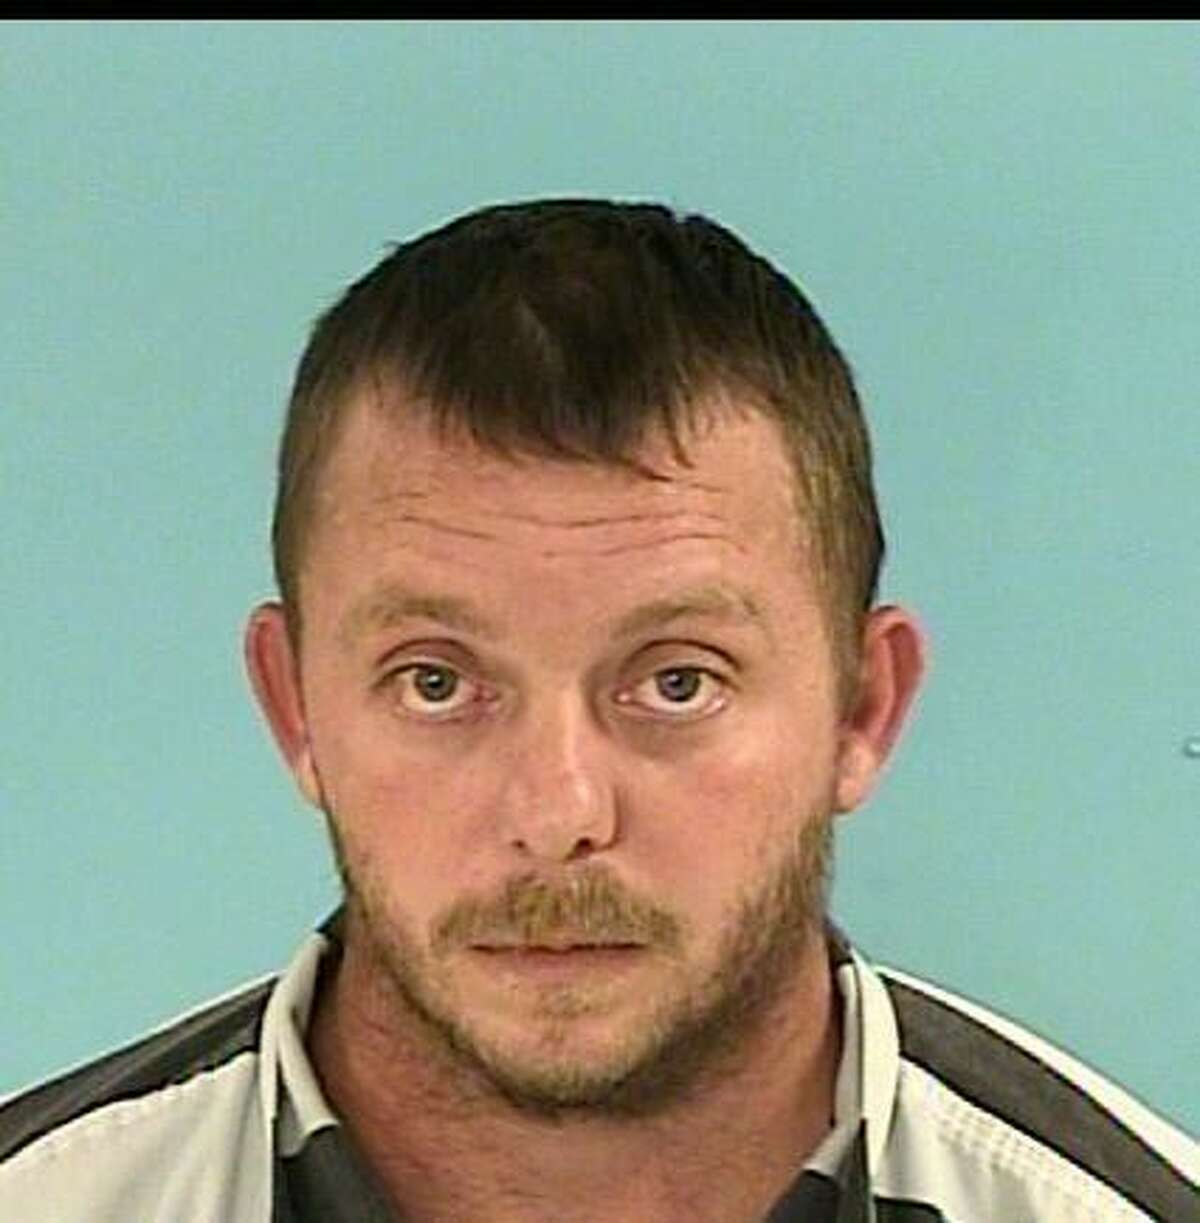 AMMONS, Gregory MitchellWhite/Male DOB: 03/09/1981Height: 5'06